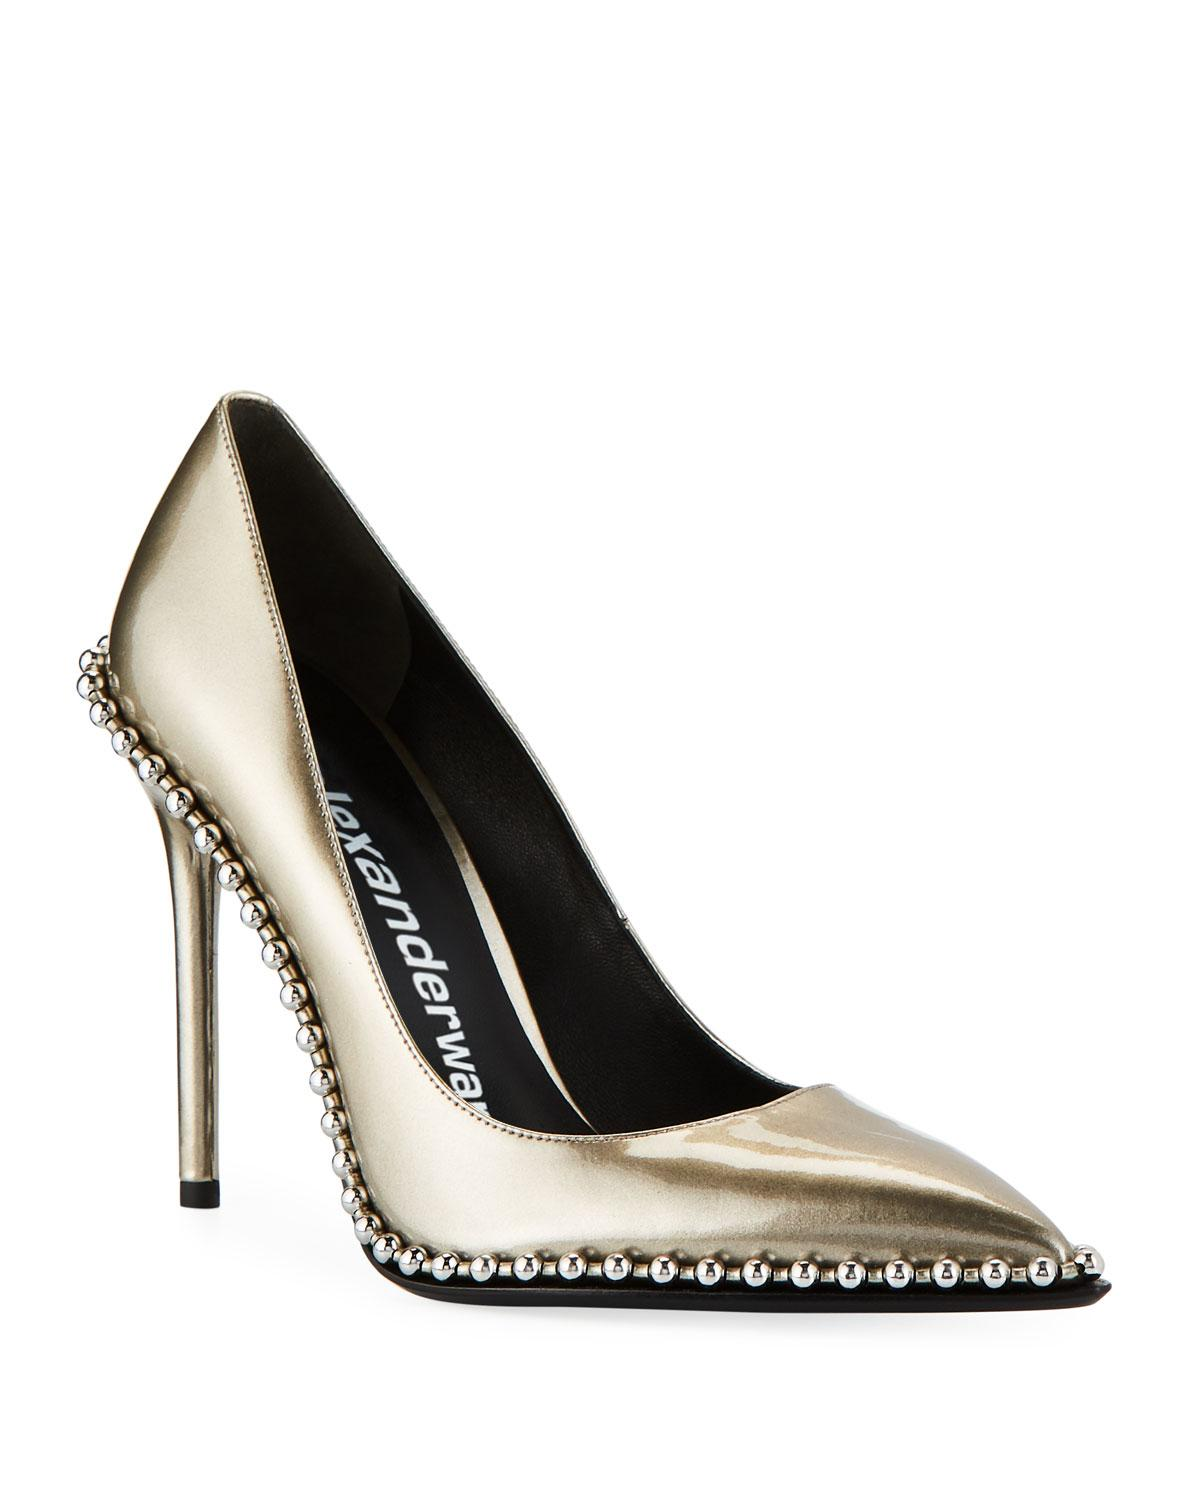 ac1c10d6781 Lyst - Alexander Wang Rie Studded Liquid Patent Leather Pumps in Black